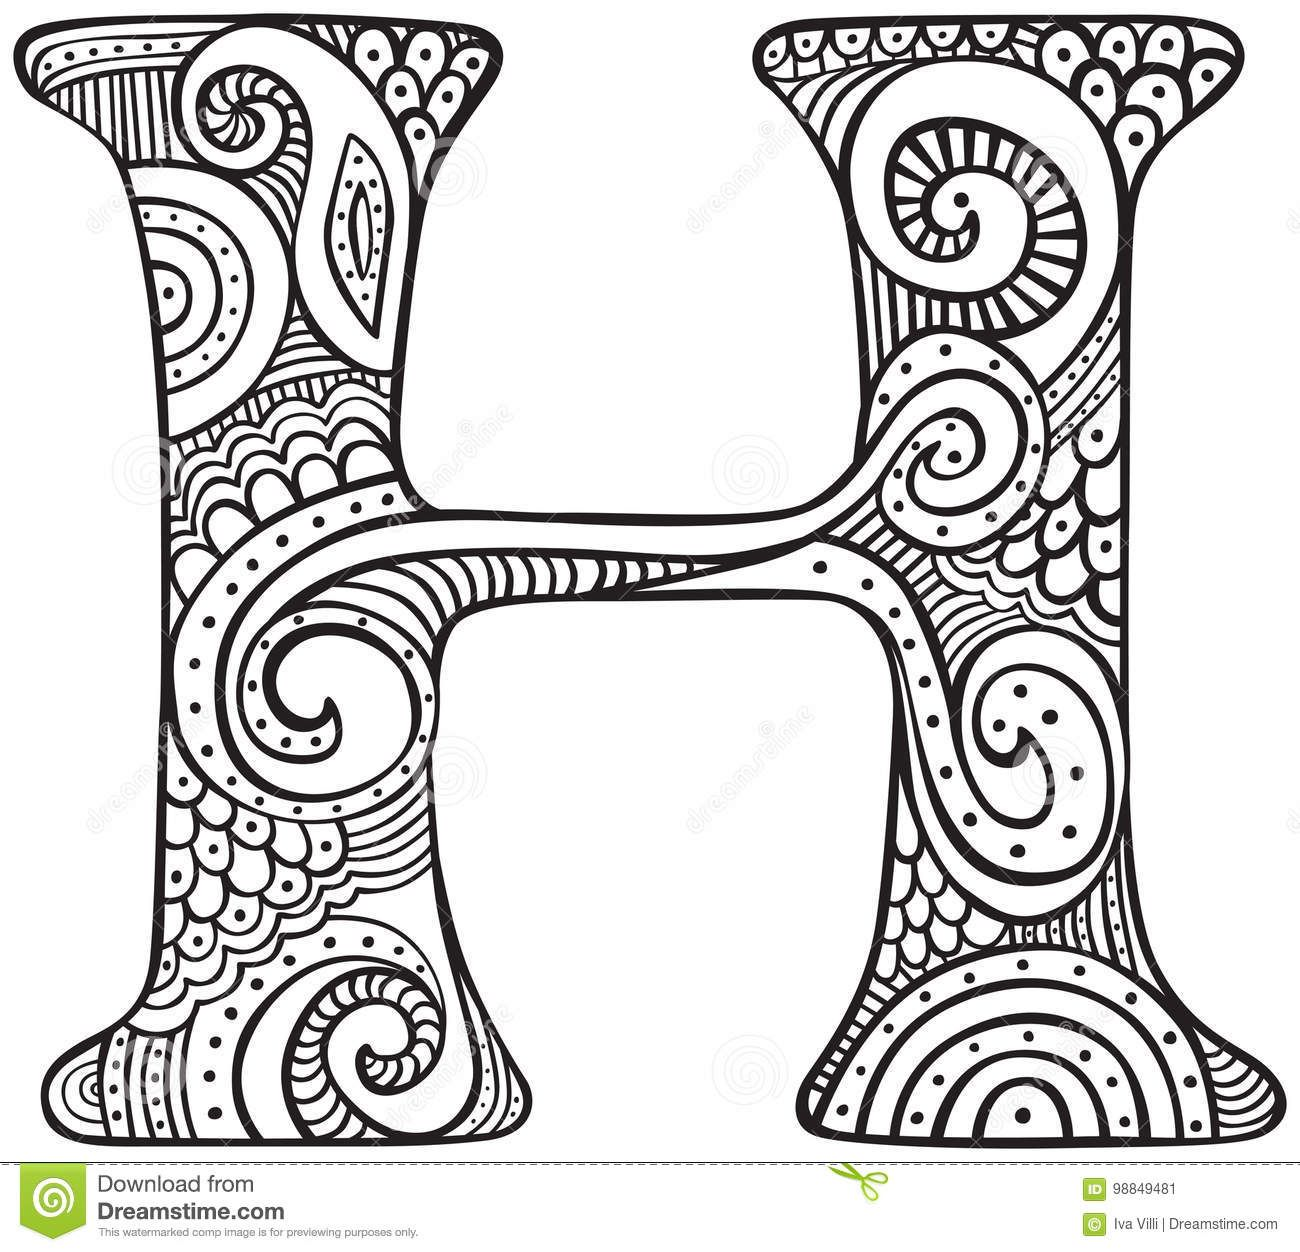 Illustration About Hand Drawn Capital Letter H In Black Coloring Sheet For Adults Illustration Of Graphic Typo How To Draw Hands Lettering Coloring Letters